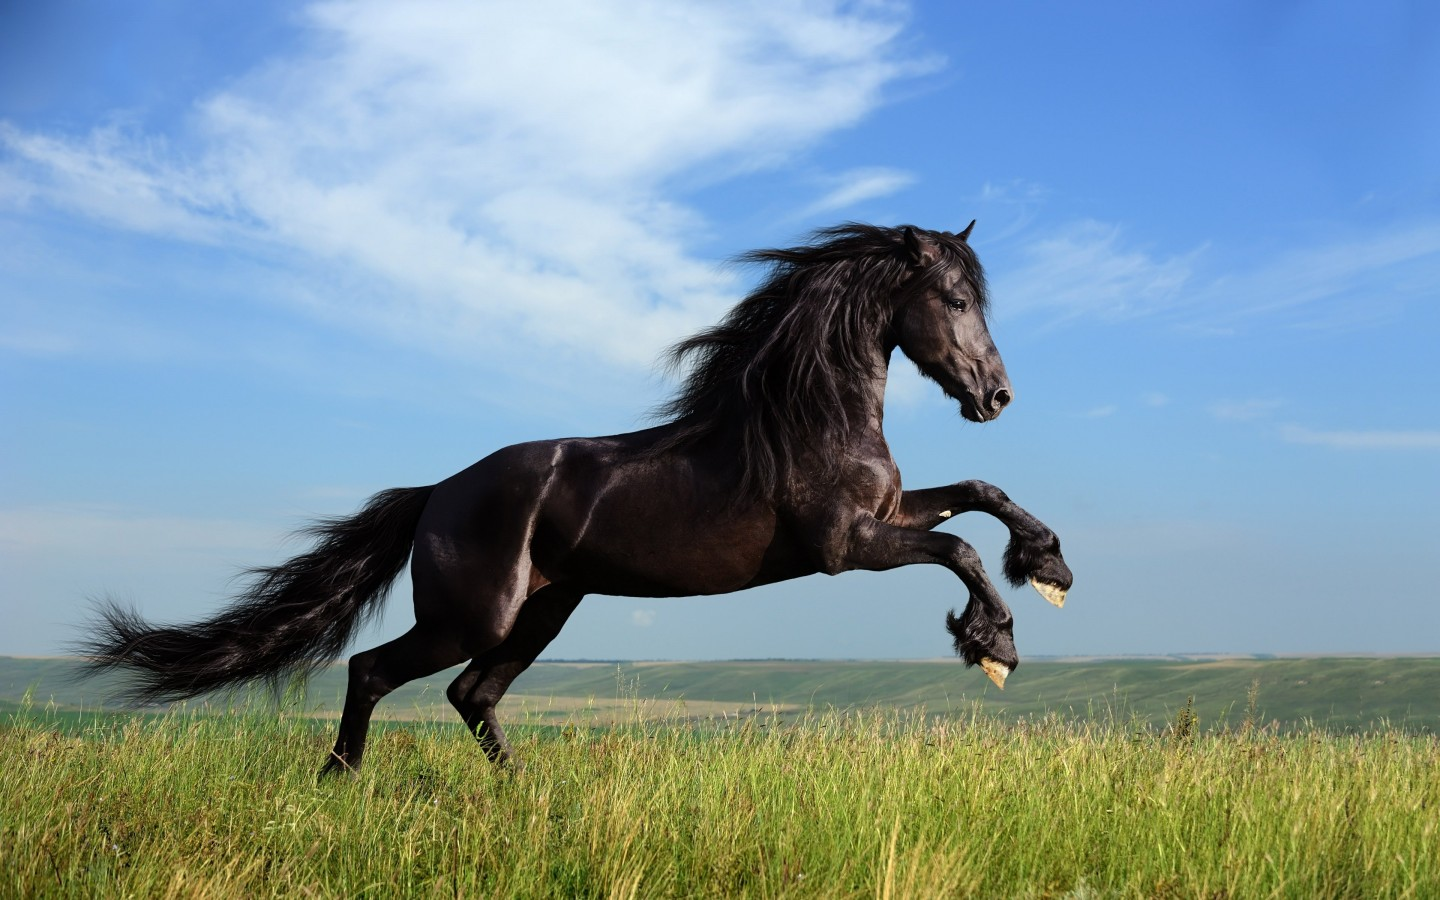 Black Horse Running Wallpaper for Desktop 1440x900